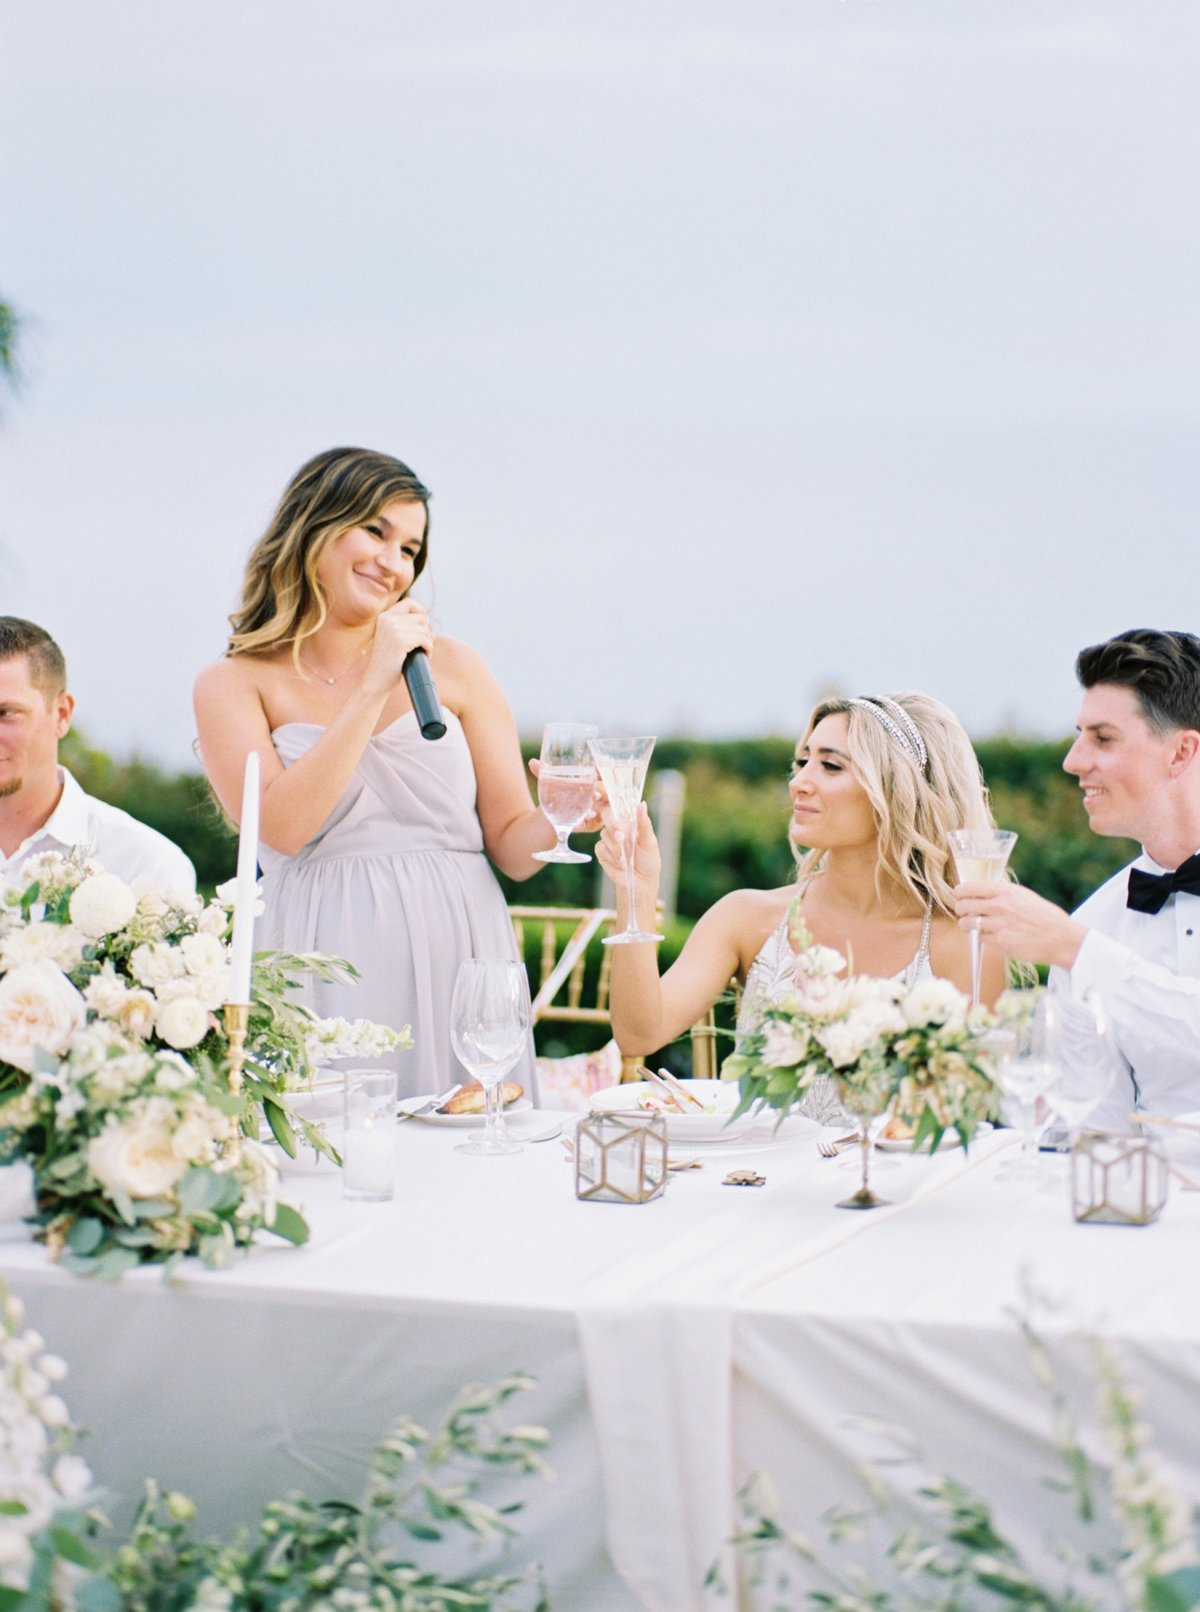 nicoleclareyphotography_evan+jeff_laguna beach_wedding_0049